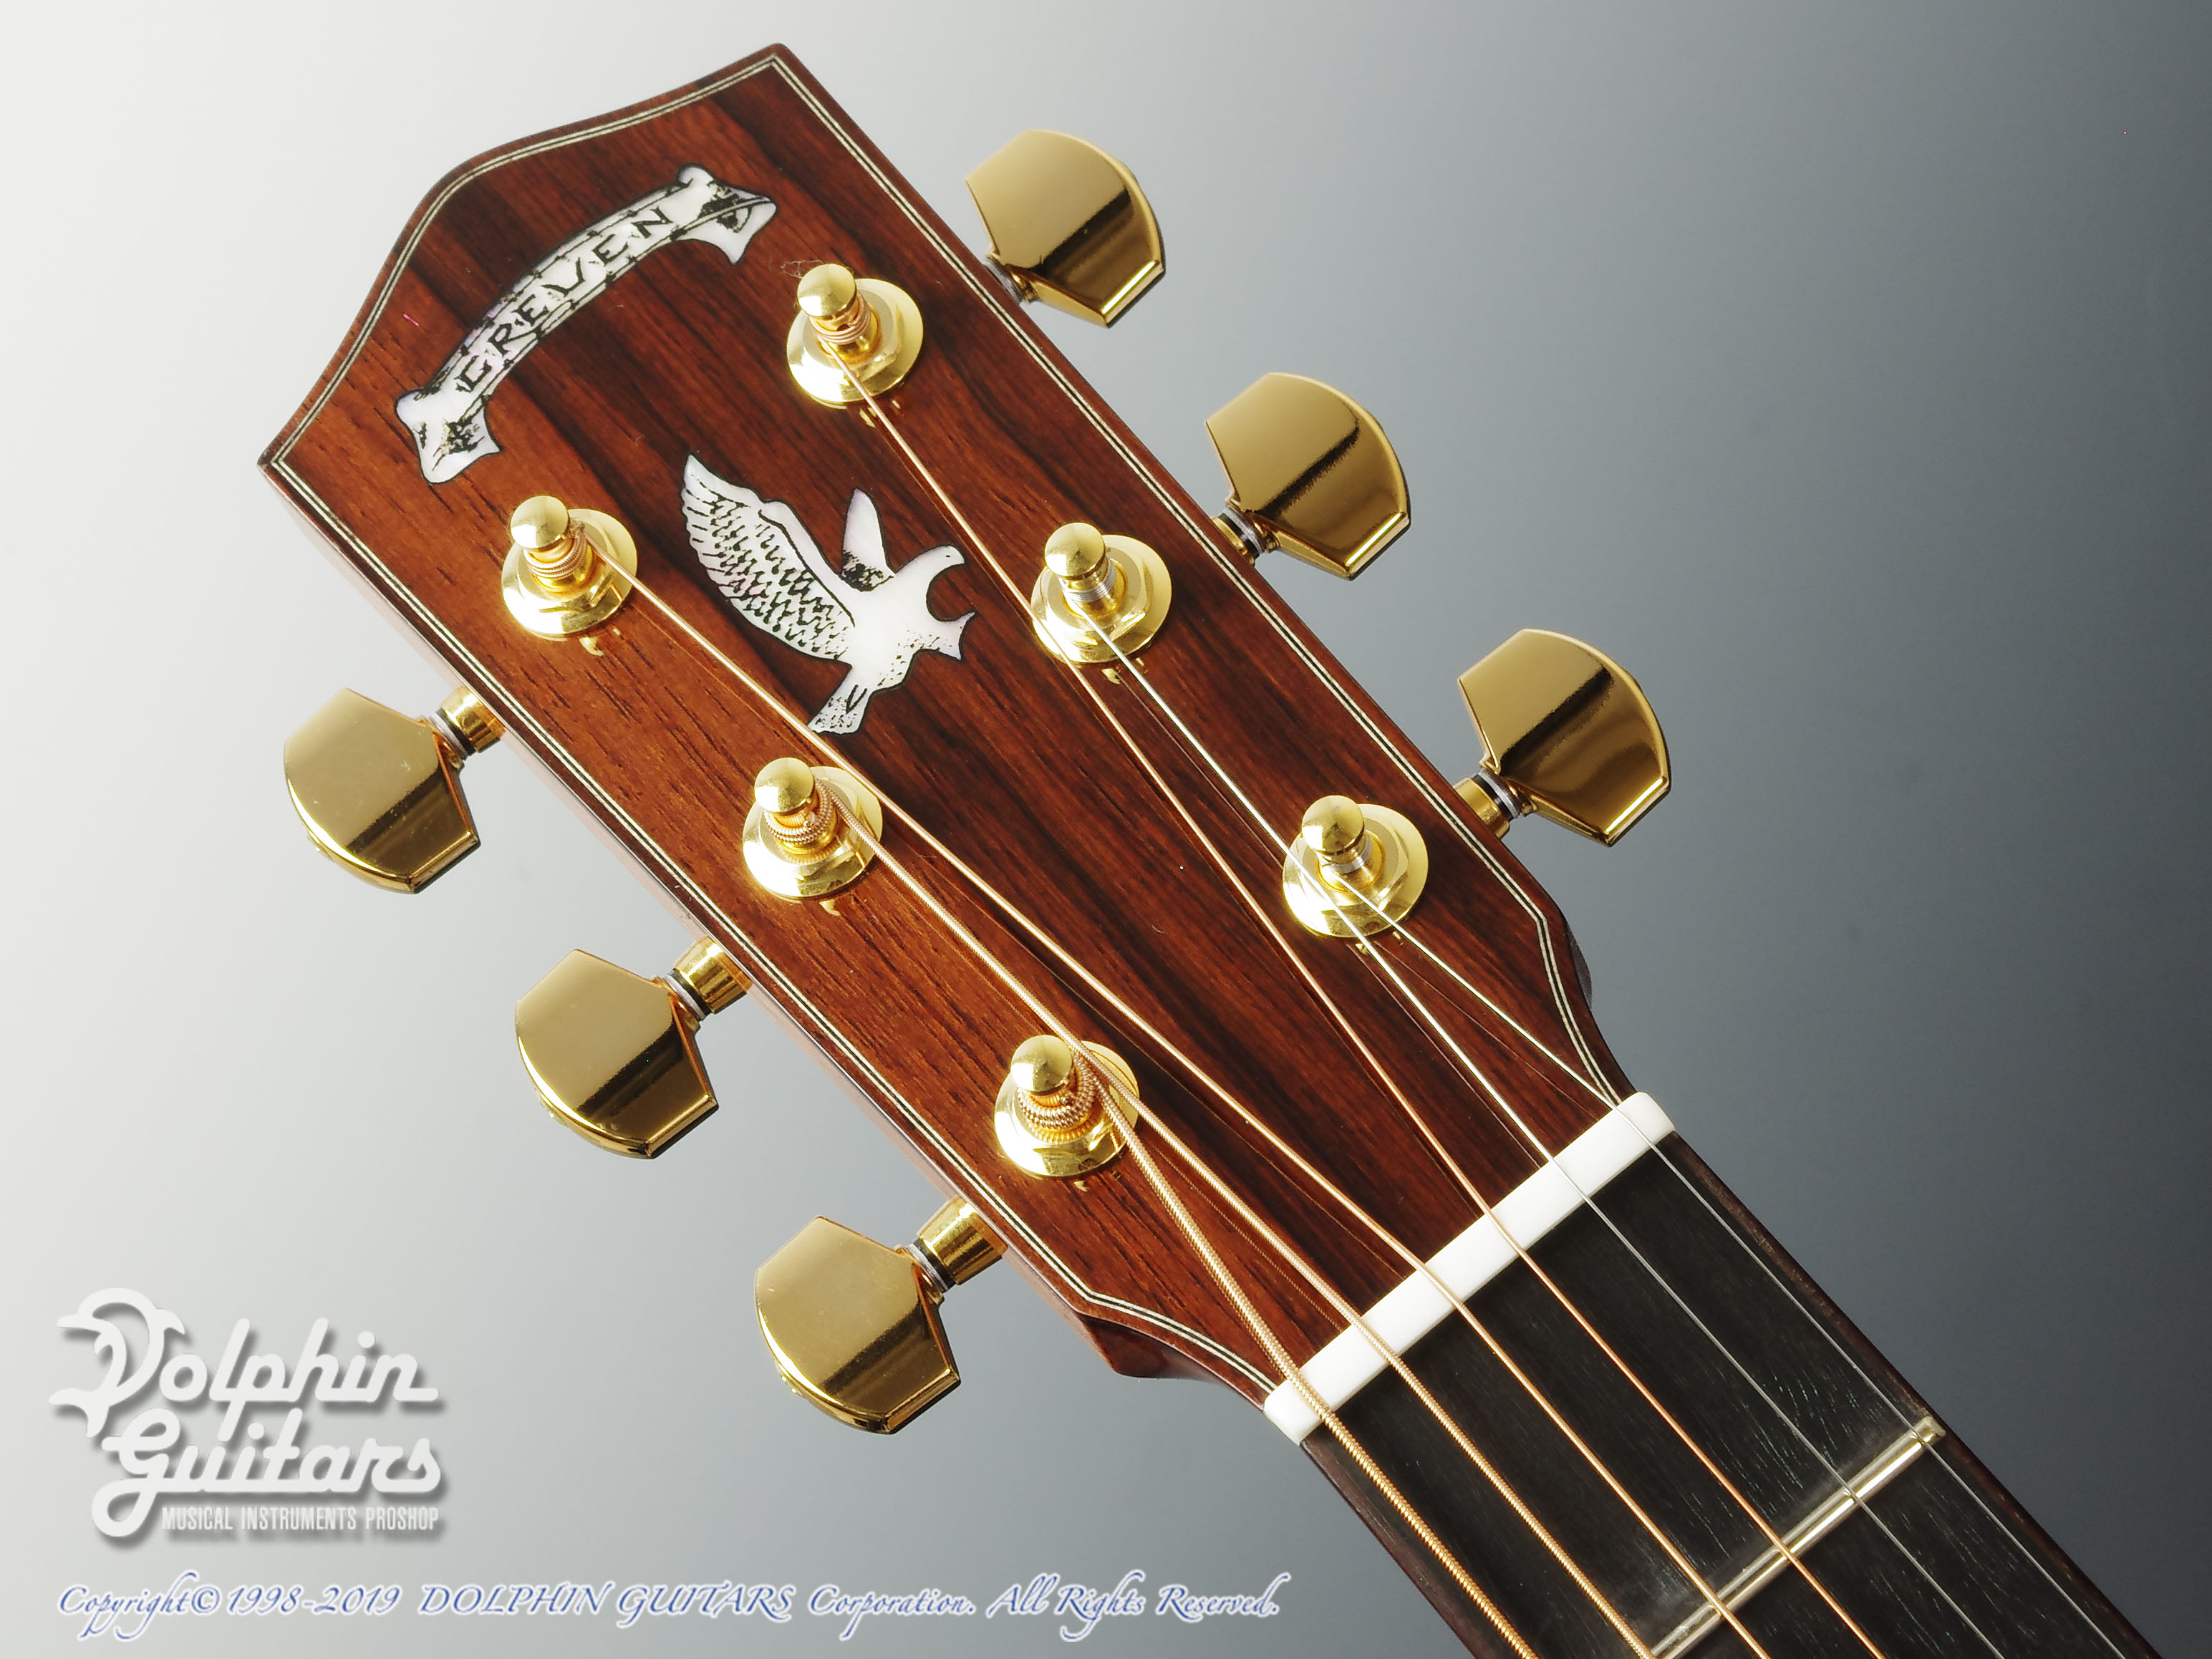 Greven Guitars Japan: Oshio-DC IR (Indian Rosewood) (6)